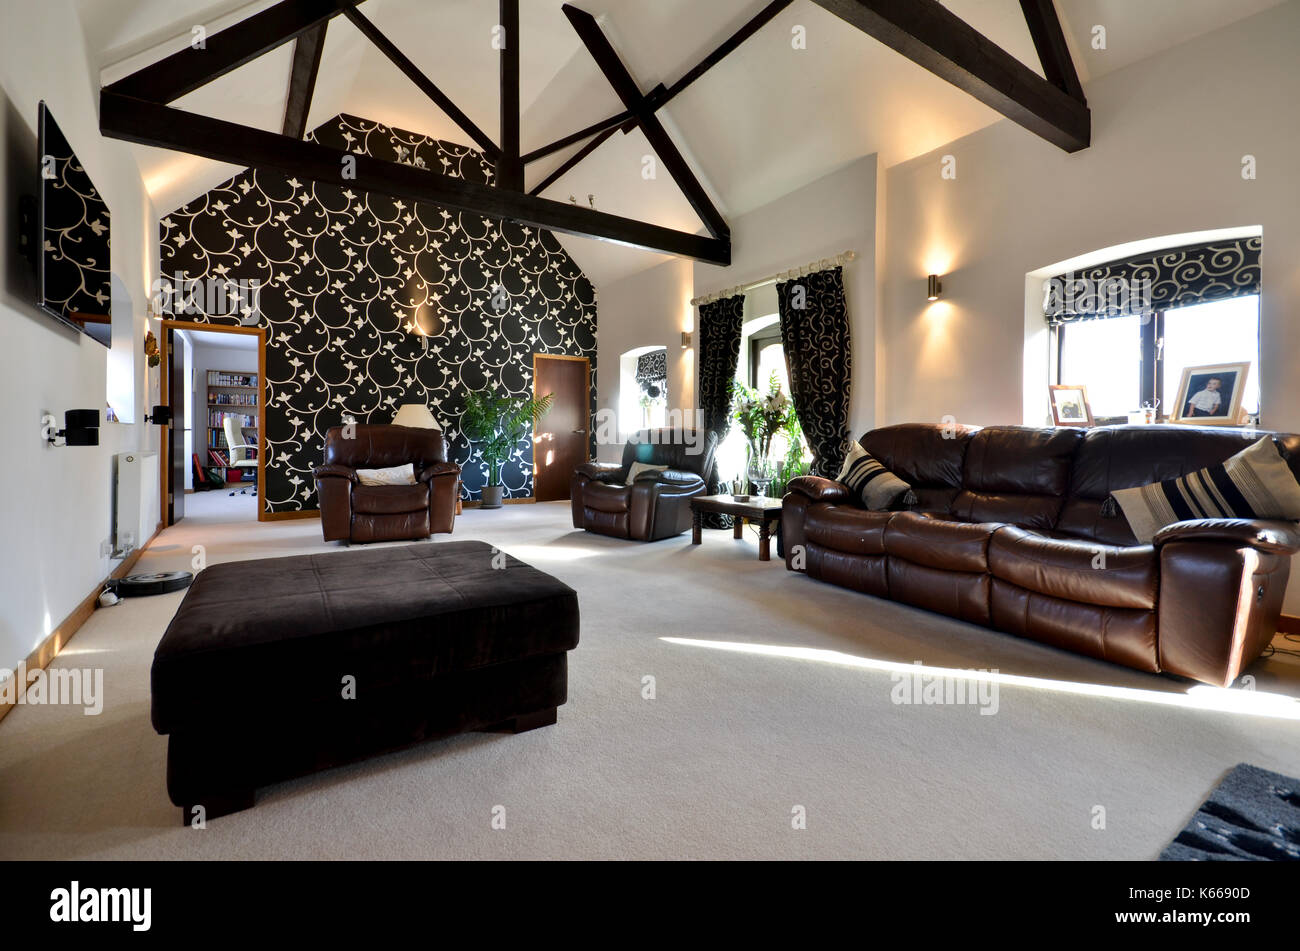 Luxury living room with leather sofas - Stock Image